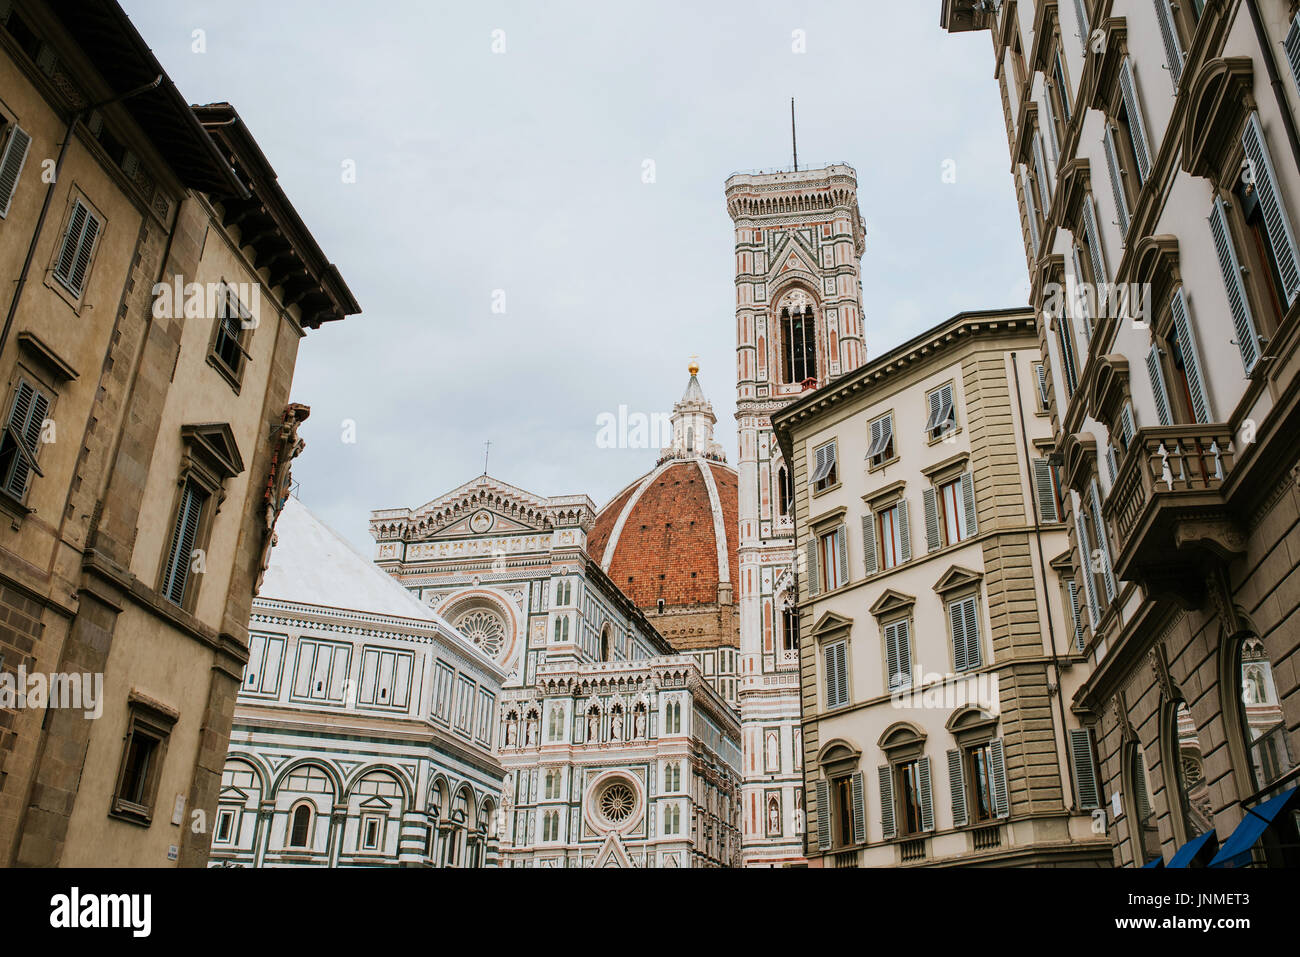 Famous Santa Maria del Fiore cathedral church with Baptistery in Florence - Stock Image